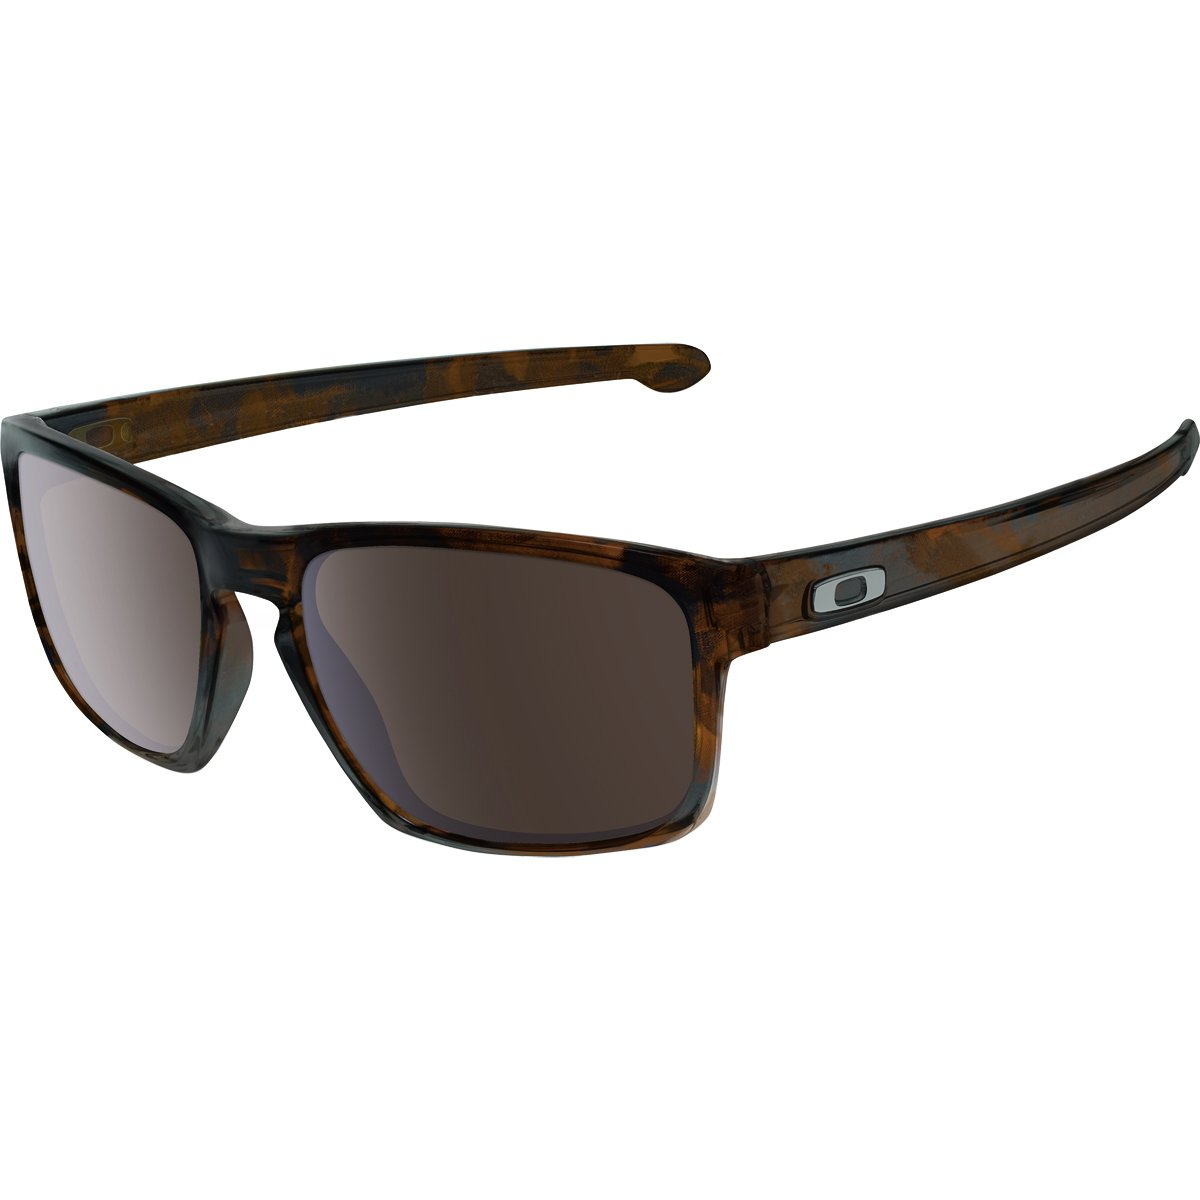 [オークリー] サングラス OO9269-01 日本 Men-(FREE サイズ) Matte Brown Tortoise/Dark Grey B00UFM03RI